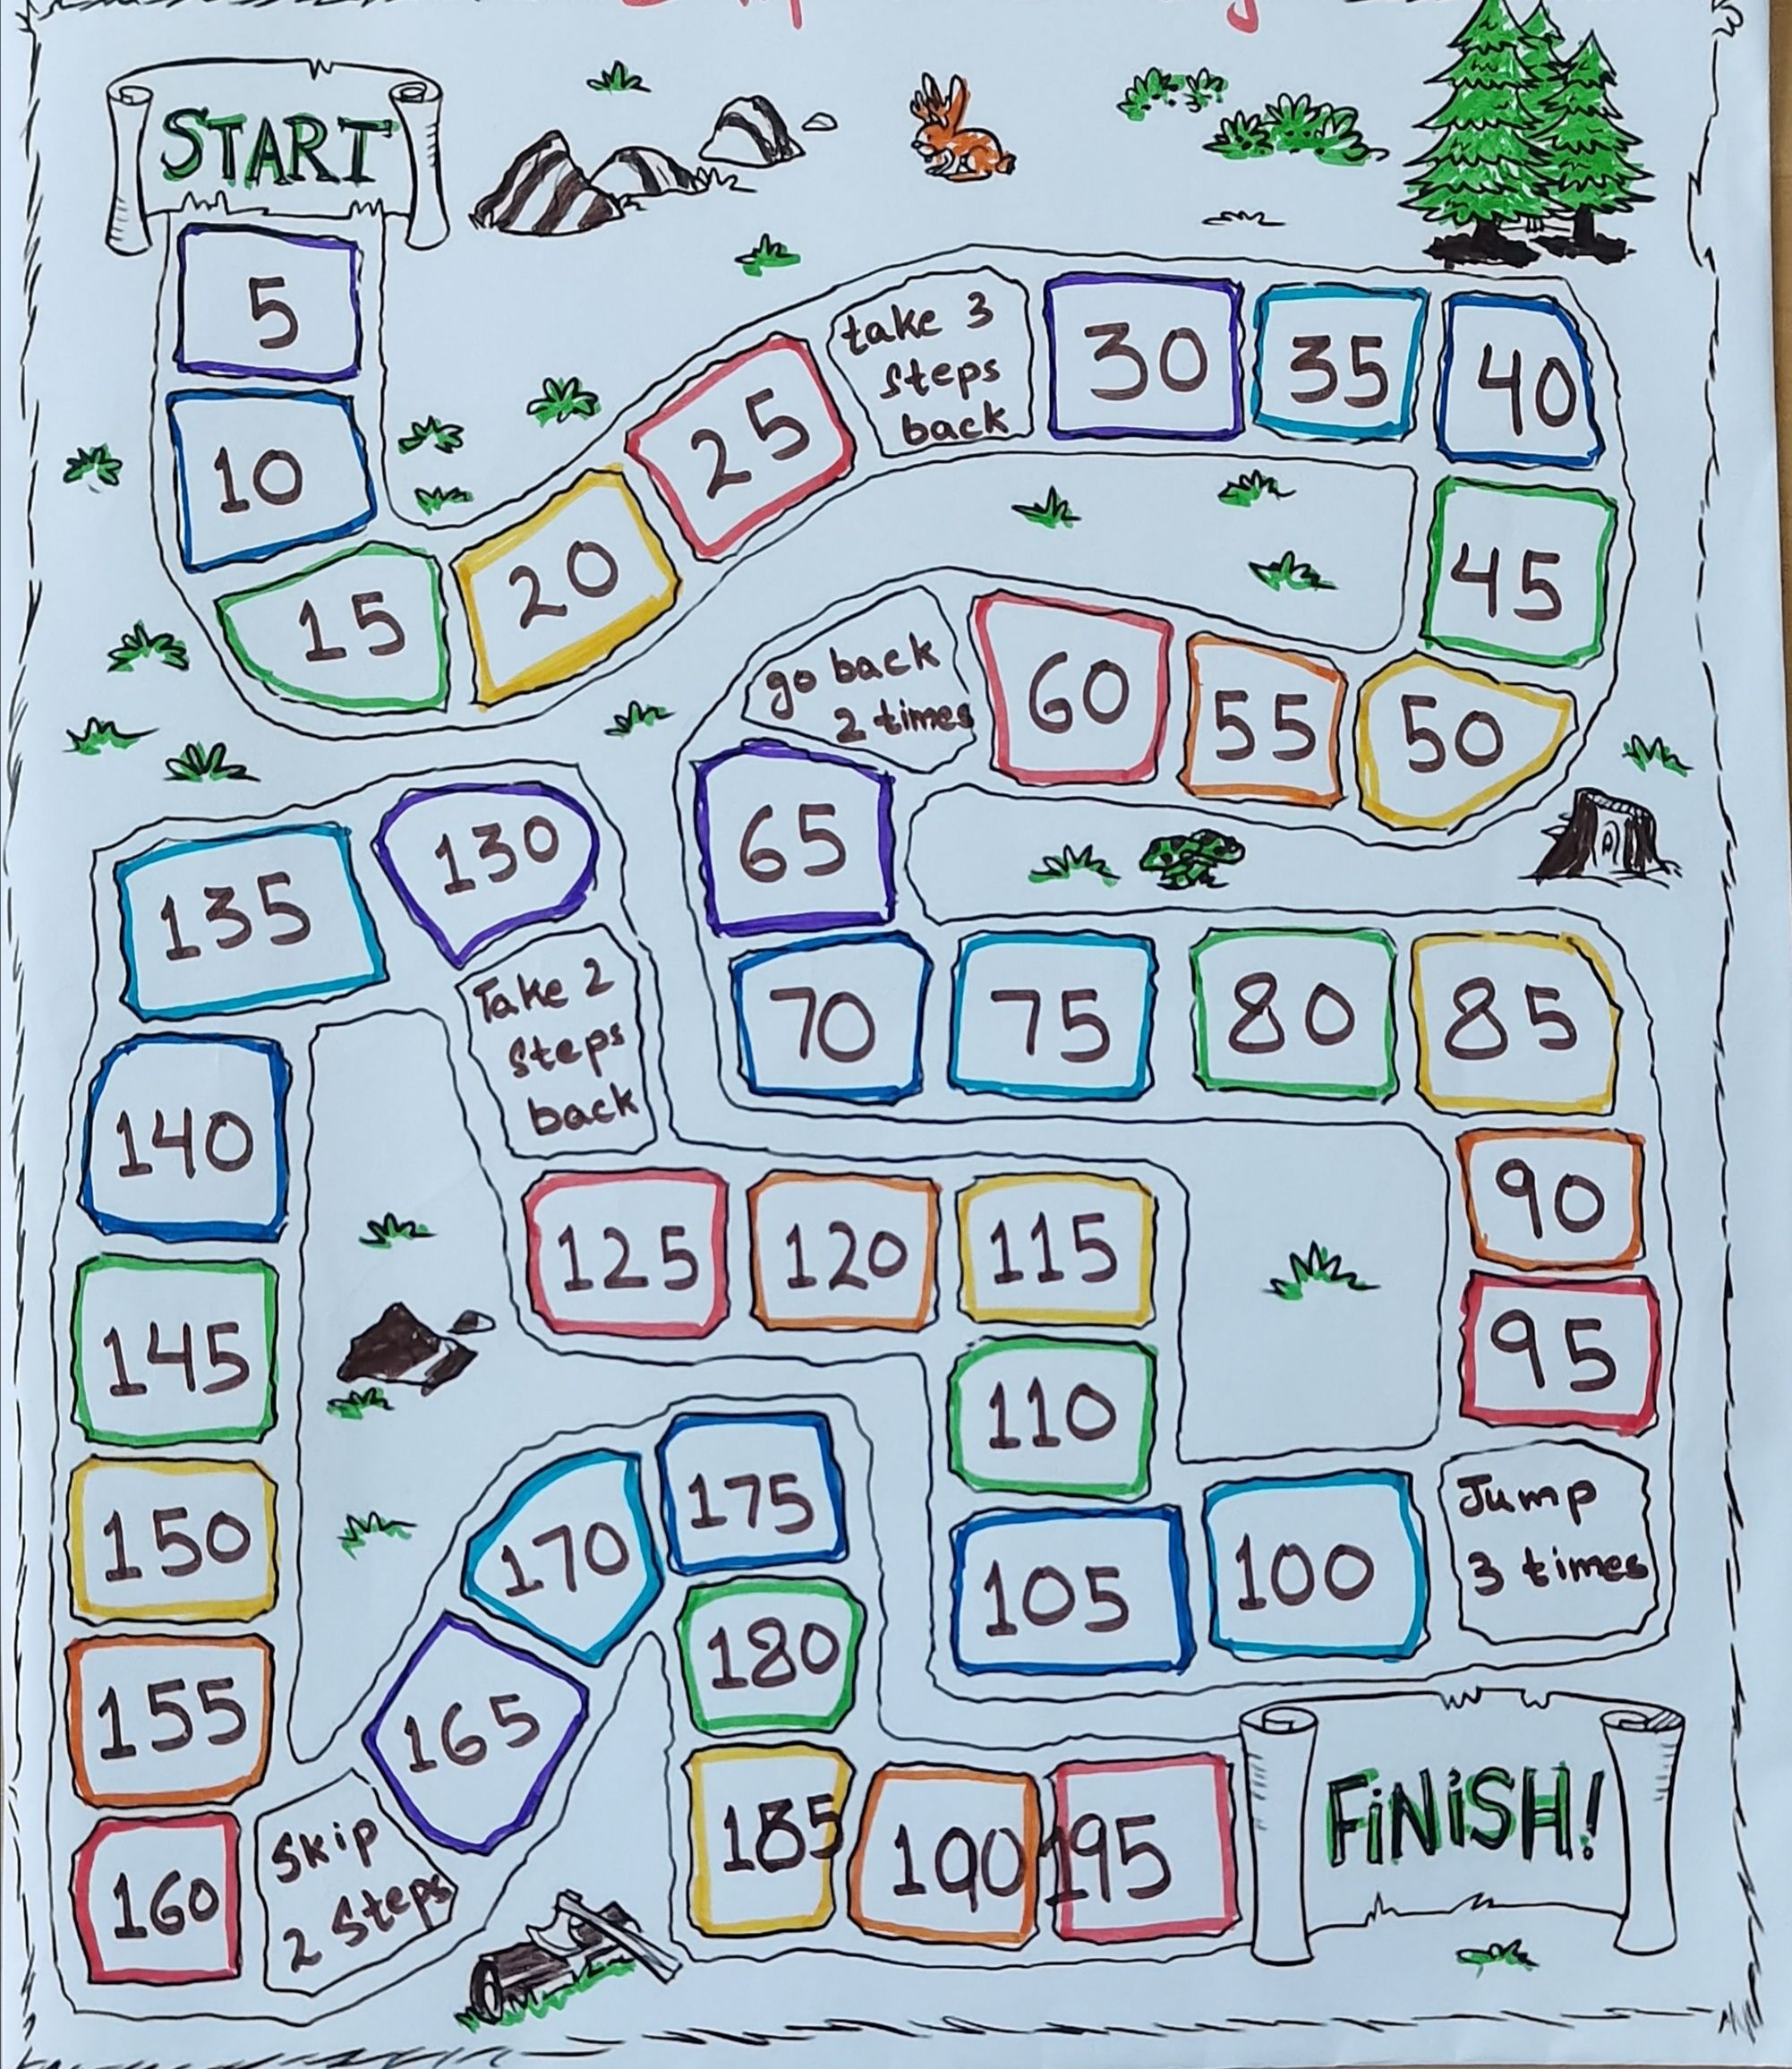 Obstacle Board Game-DIY-Skip Counting by 5